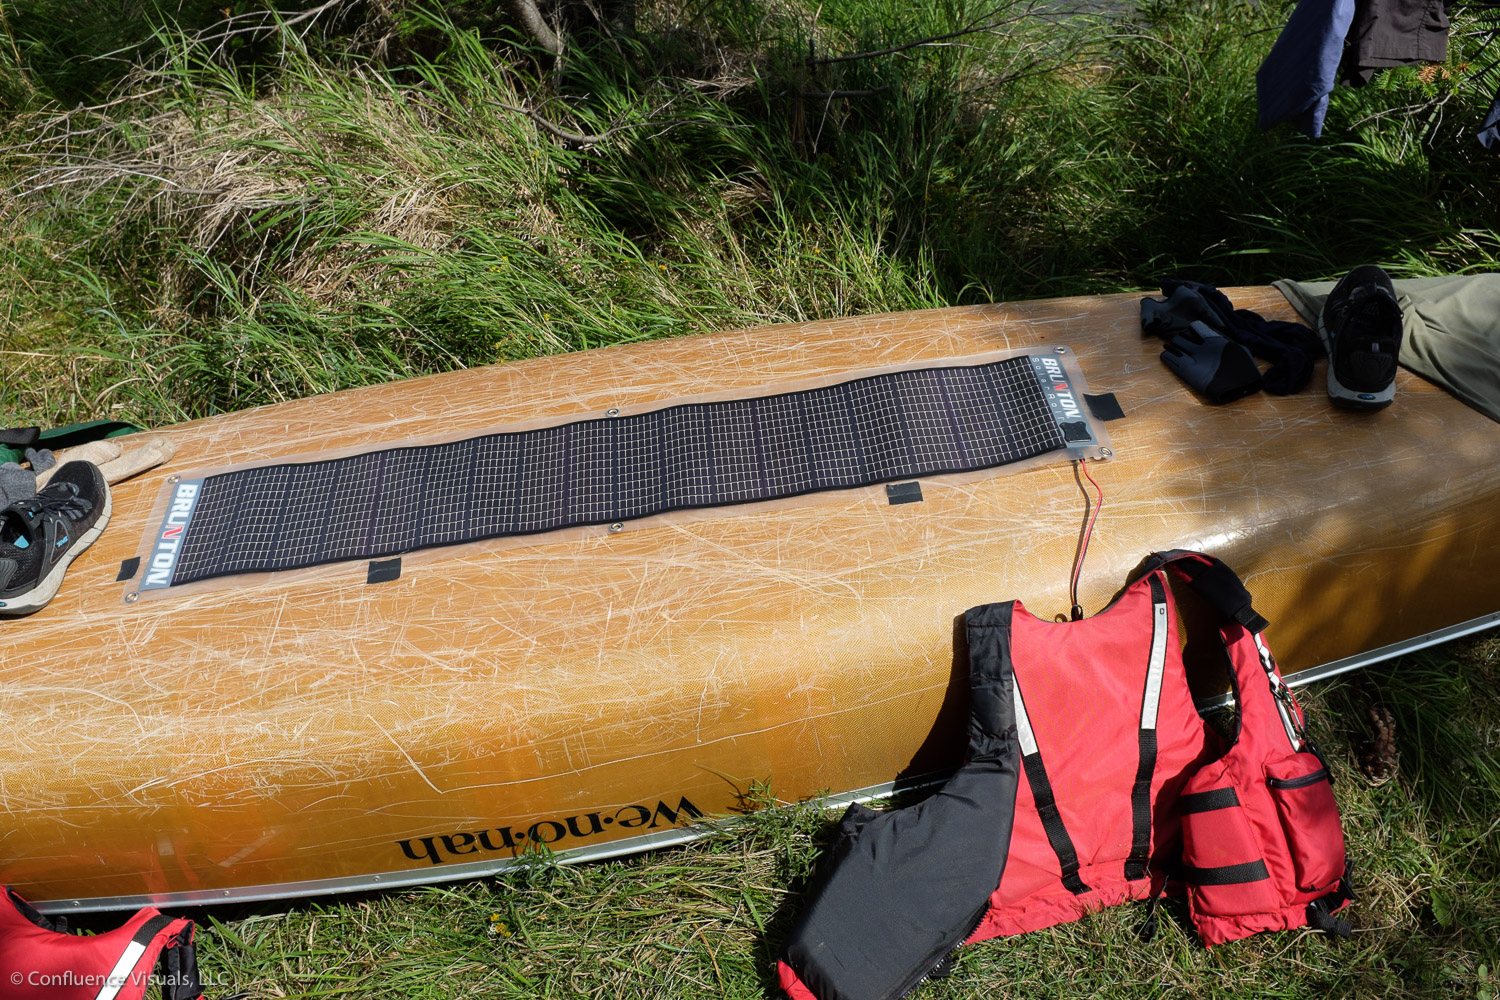 Charging the batteries (hiding from the sun under the PFD) Note the gaffing tape holding solar array to the boat.